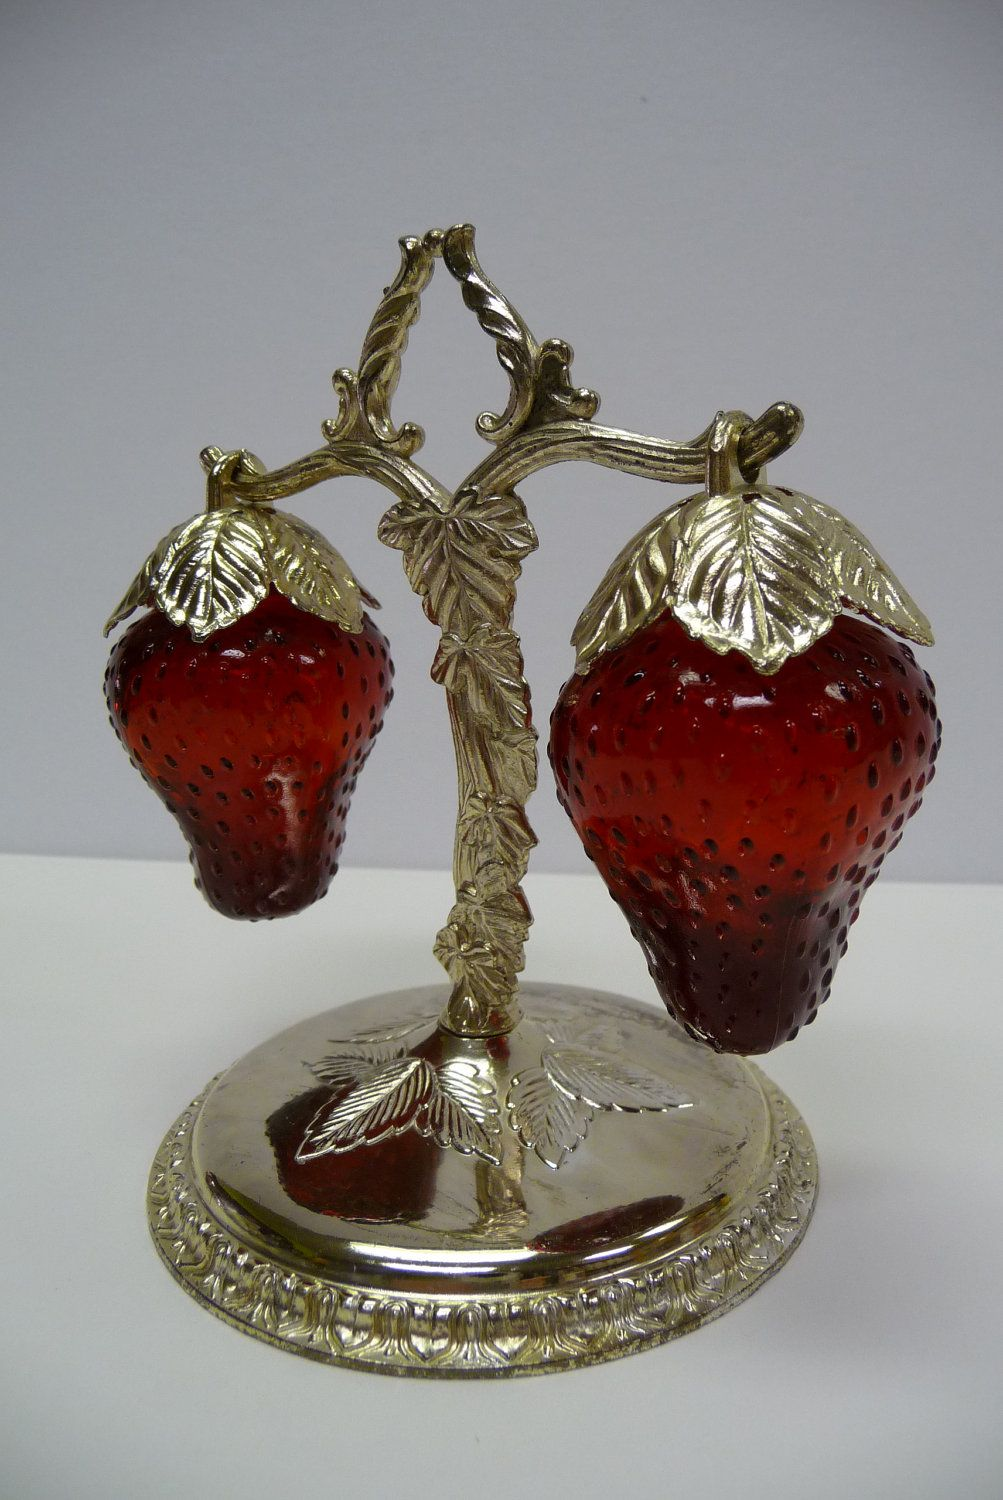 Vintage Strawberry Salt And Pepper Shakers My Mom Loved Collecting